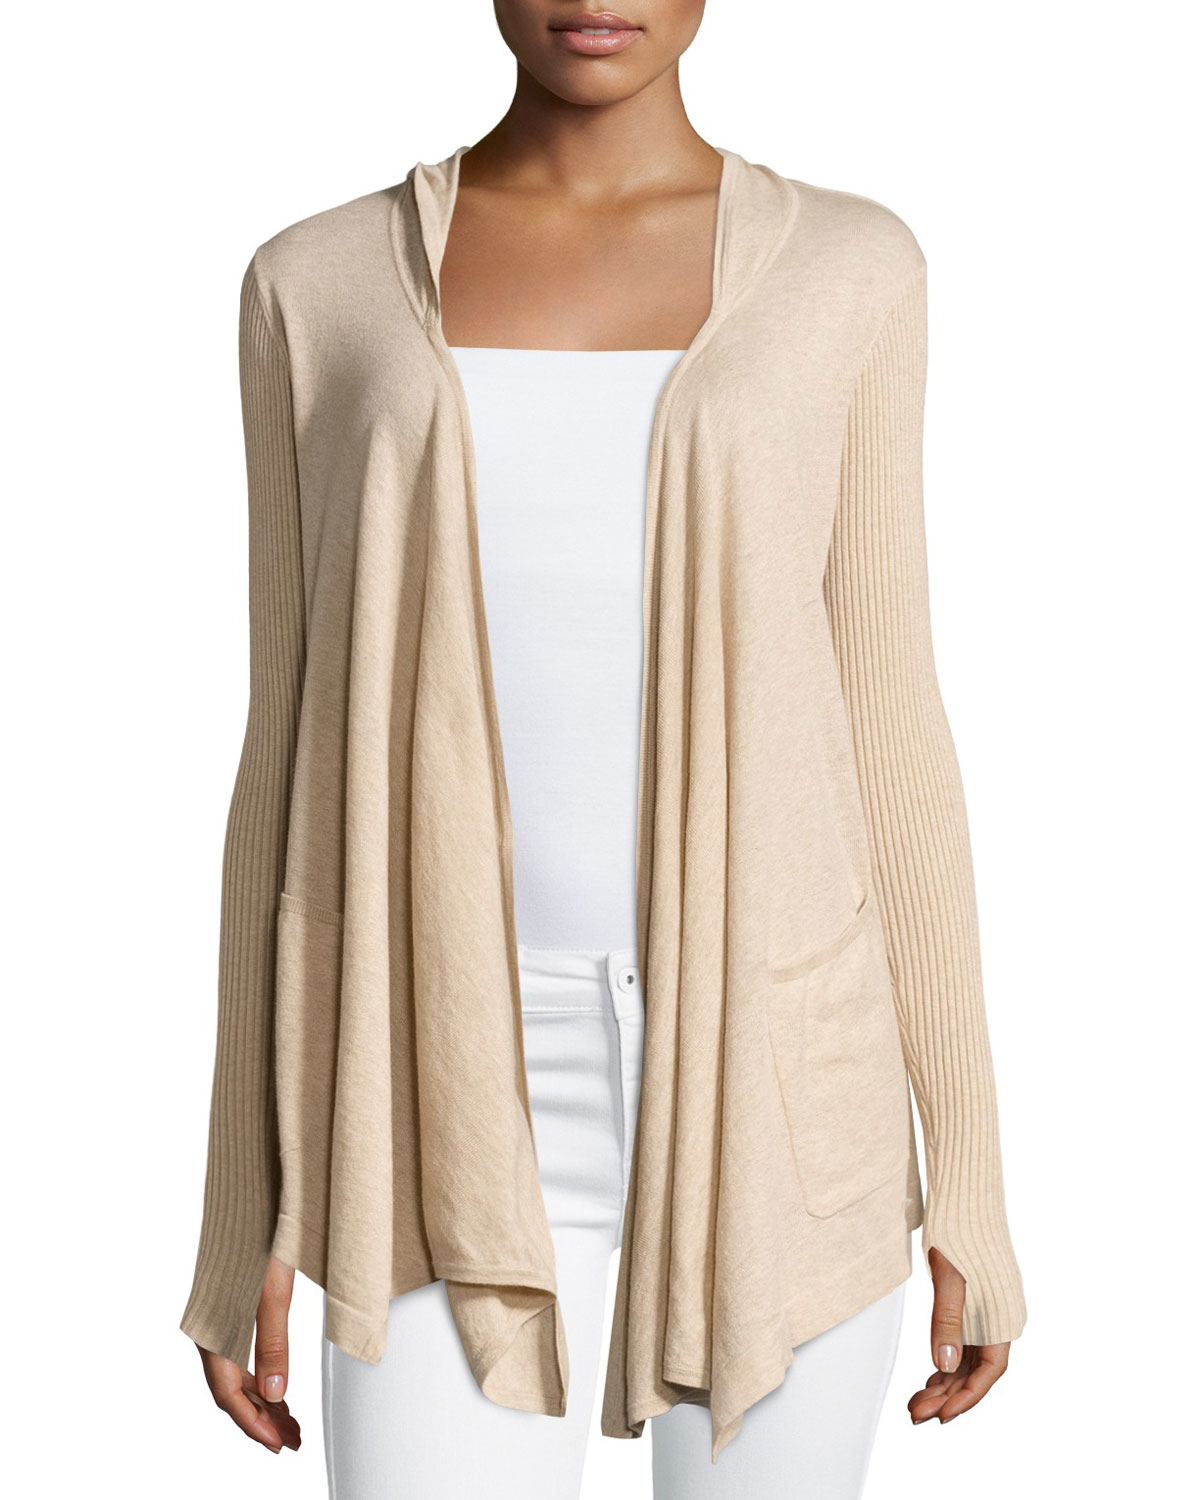 Minnie rose Cotton Hooded Open-front Duster Cardigan in Natural | Lyst